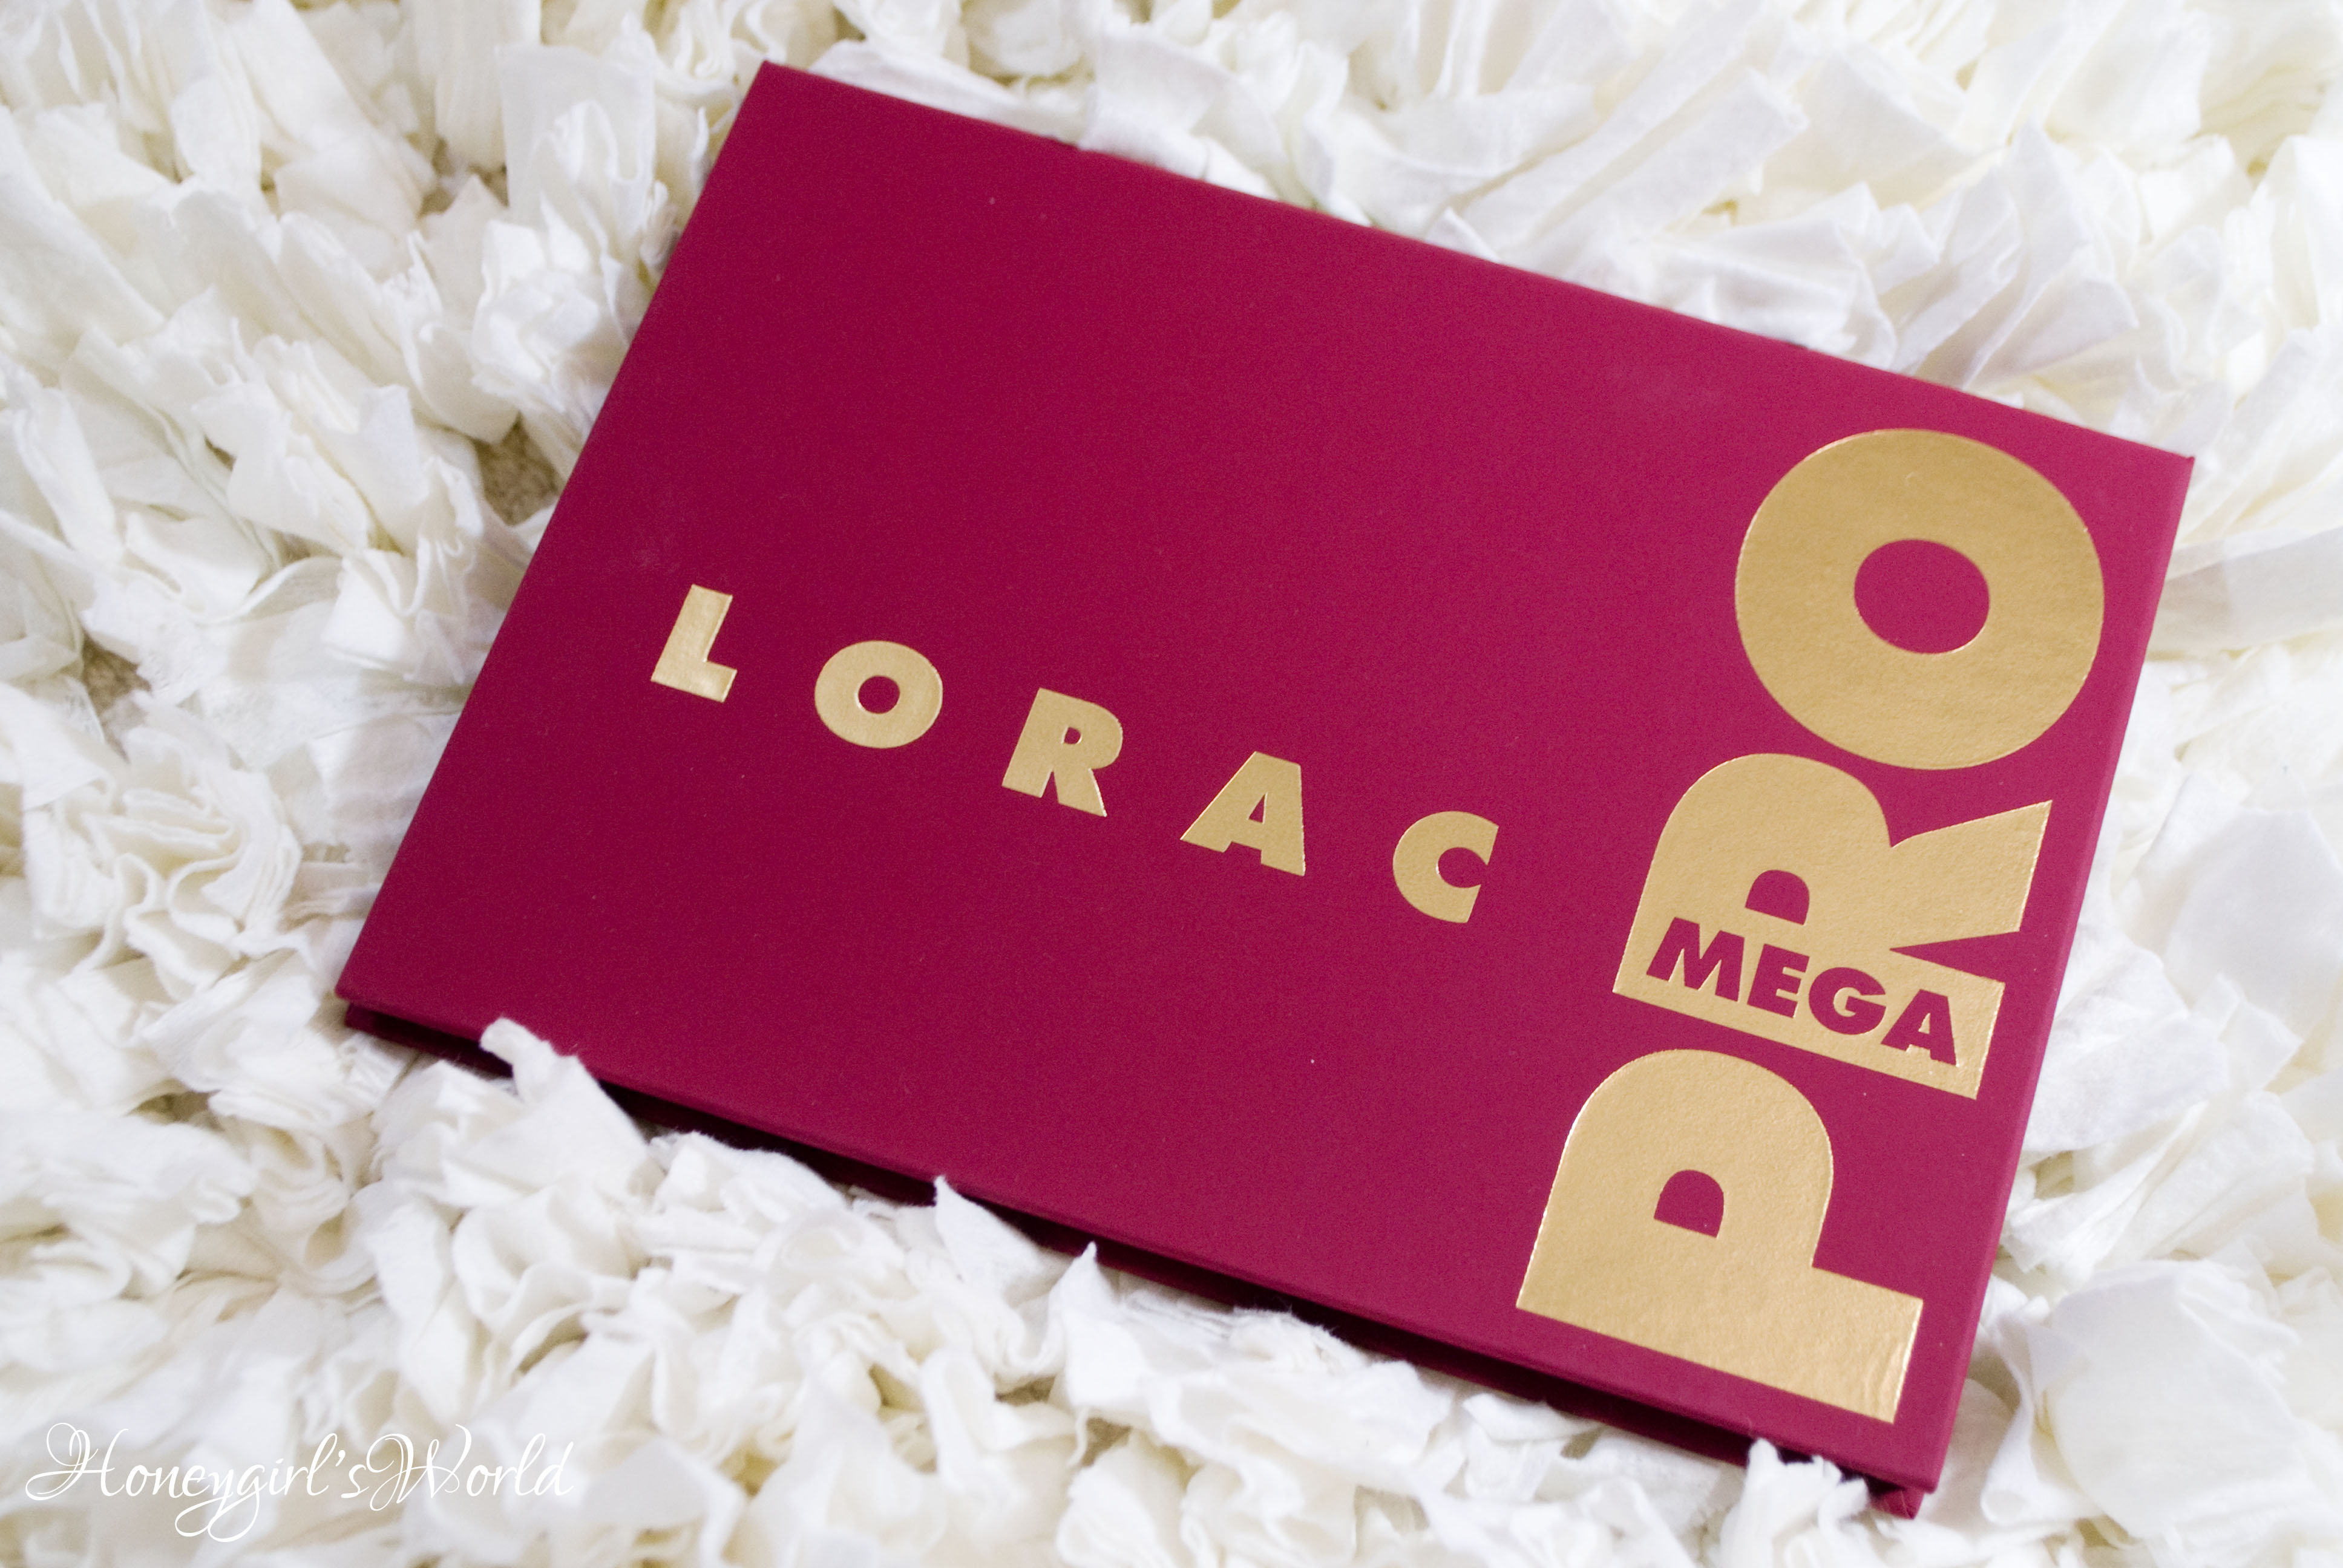 Lorac Mega Pro Palette – Reveal and Swatches